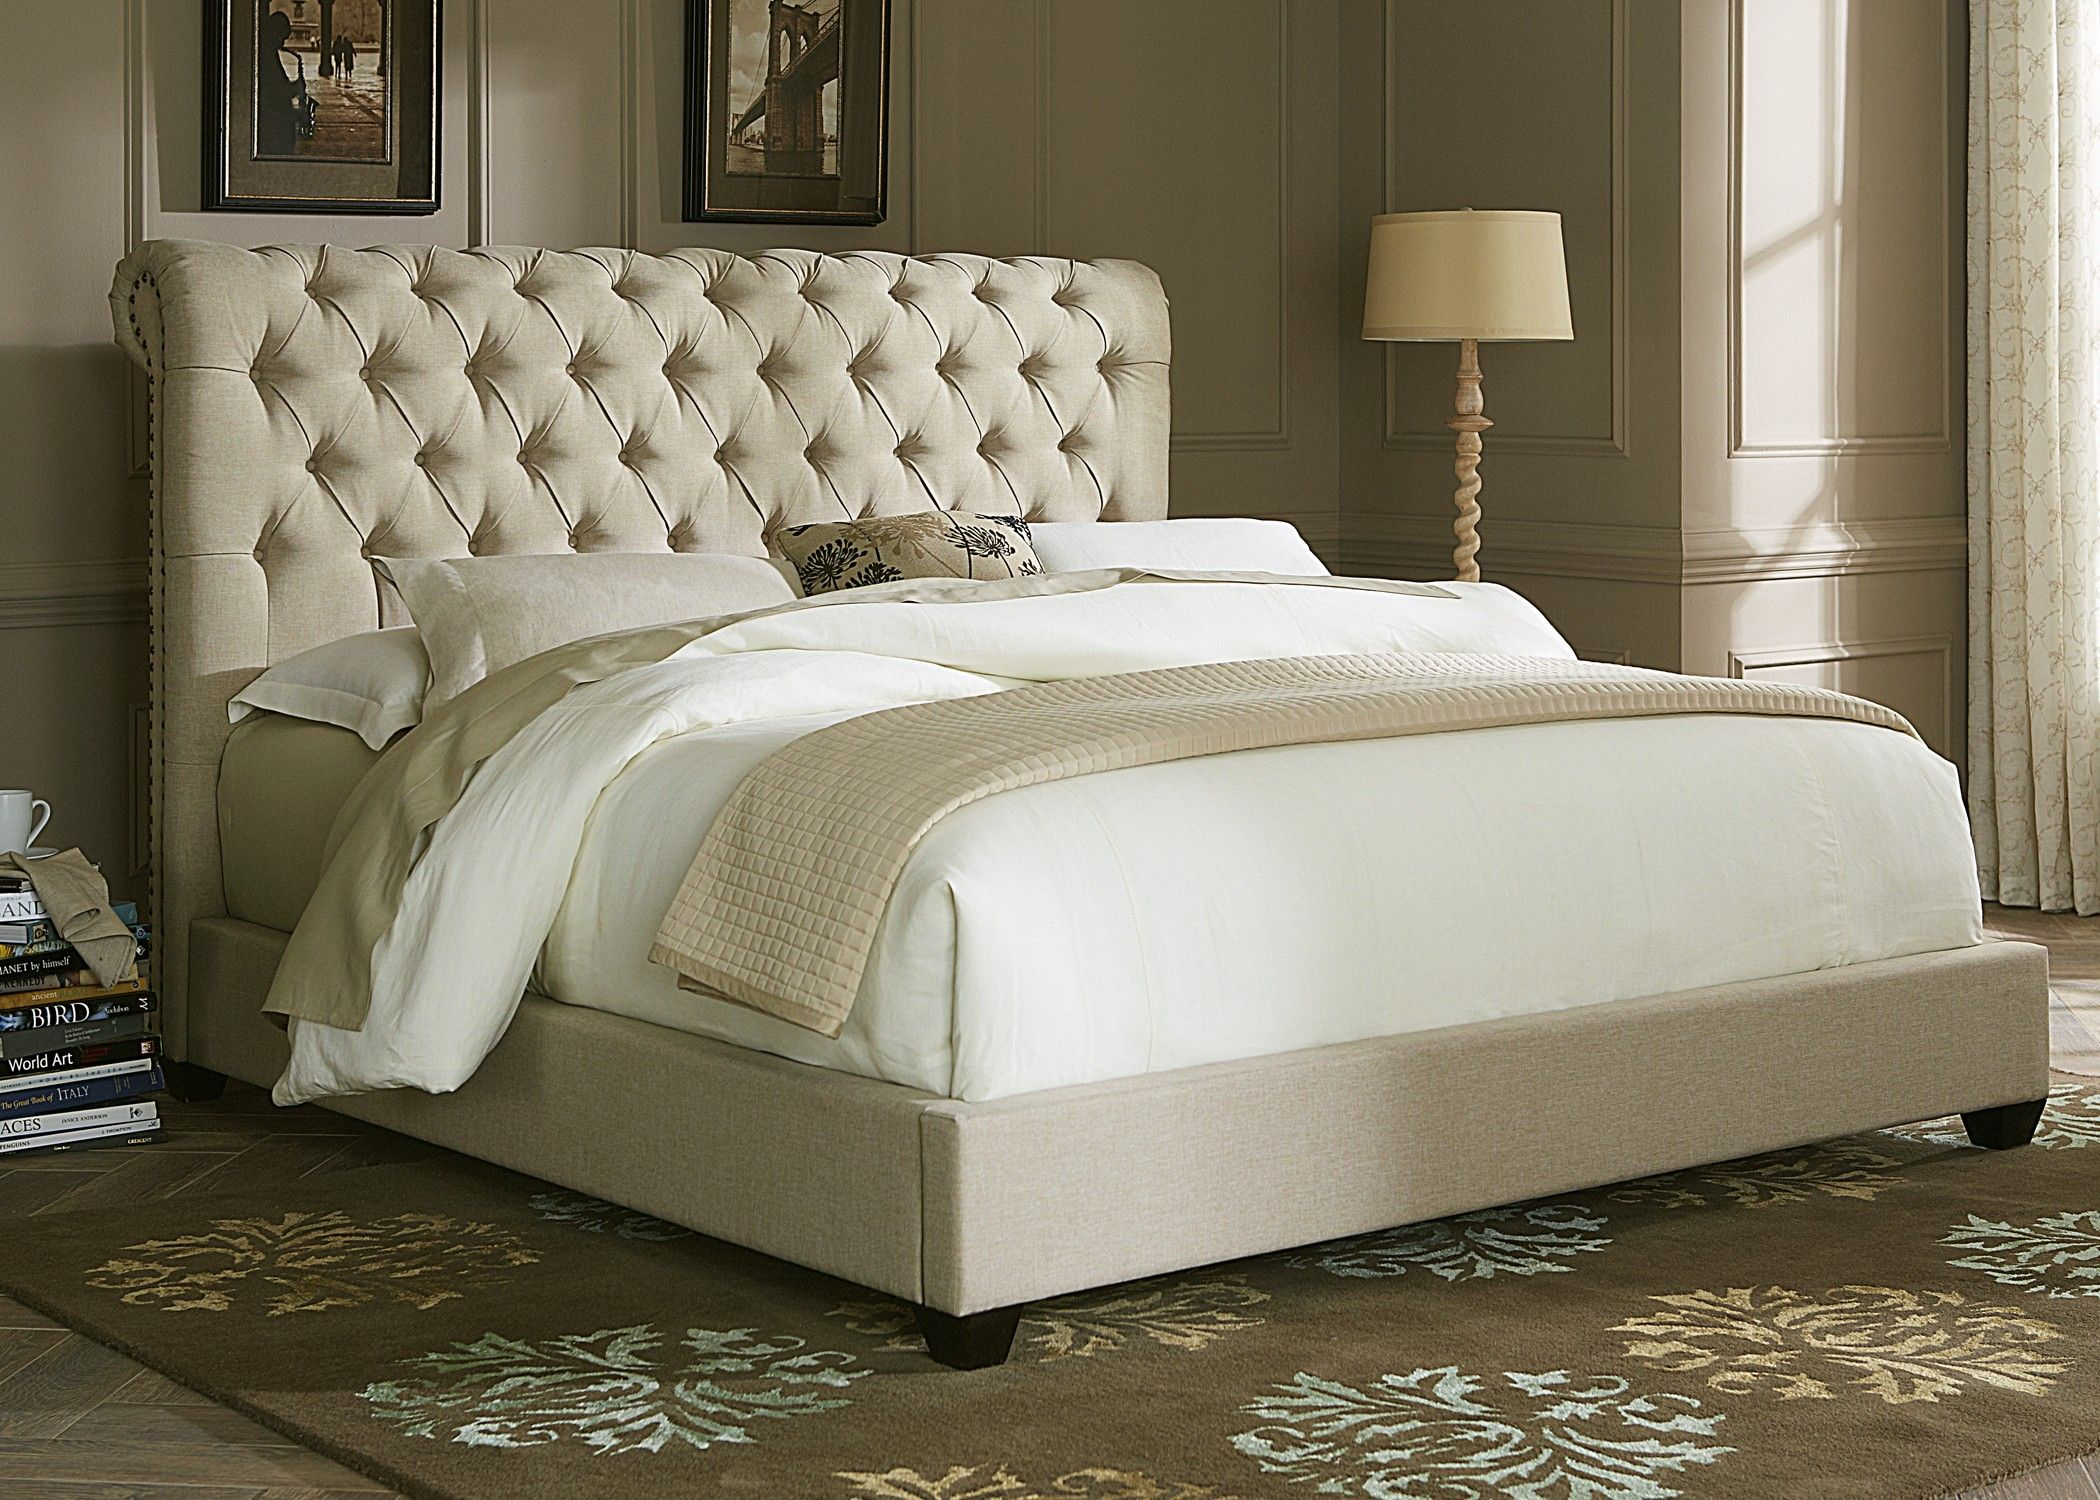 tufted upholstered sleigh bed. Fine Upholstered Upholstered Beds Queen Chesterfield Sleigh Platform Bed In  Tufted Natural Linen Dining Room Table Sets Bedroom Furniture Curio Cabinets And  To I